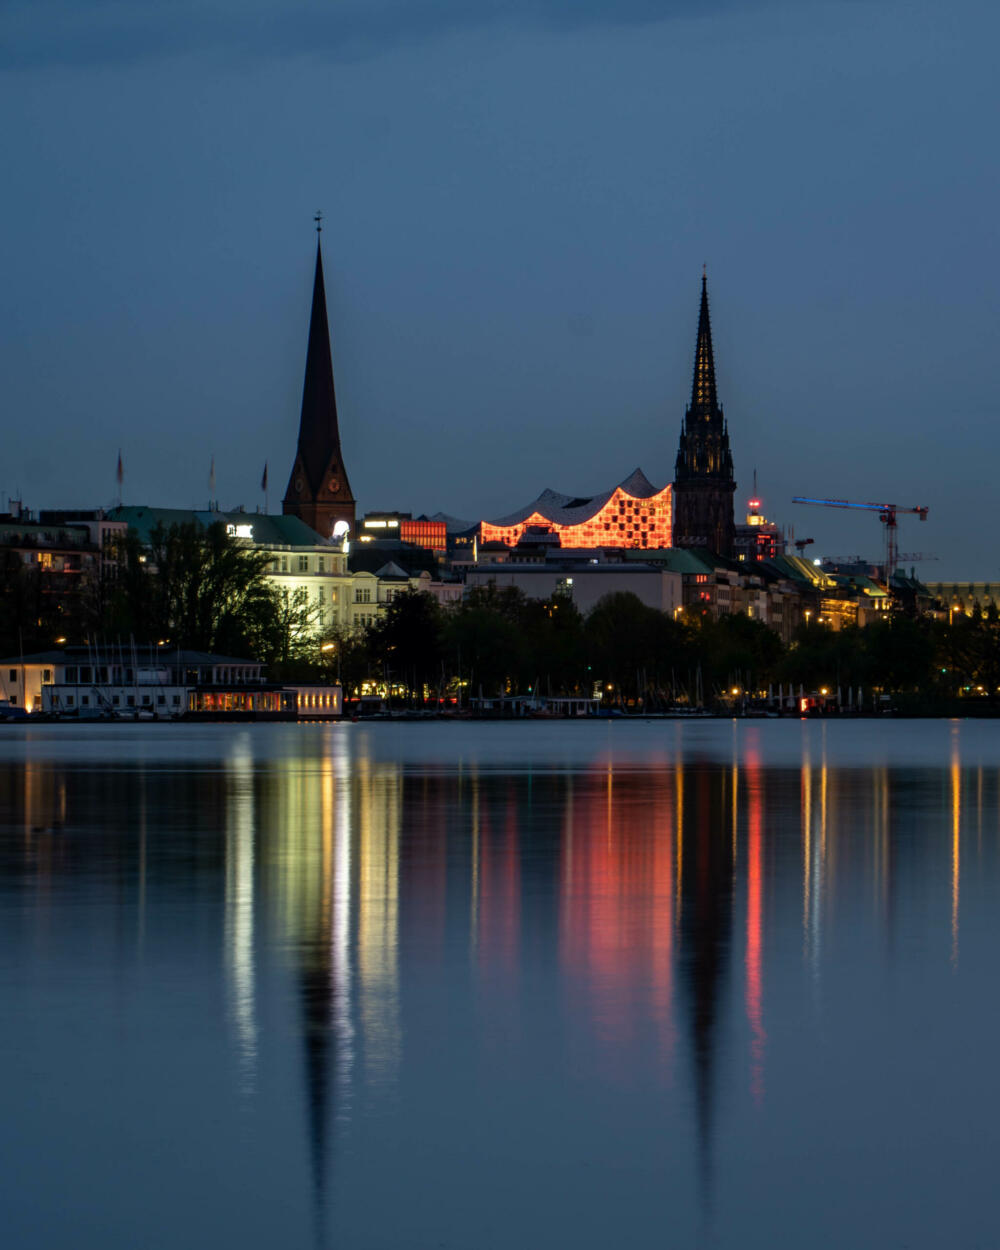 Jan Düerkop: large body of water in front of a city at dawn. Lights from the city reflect of the water.